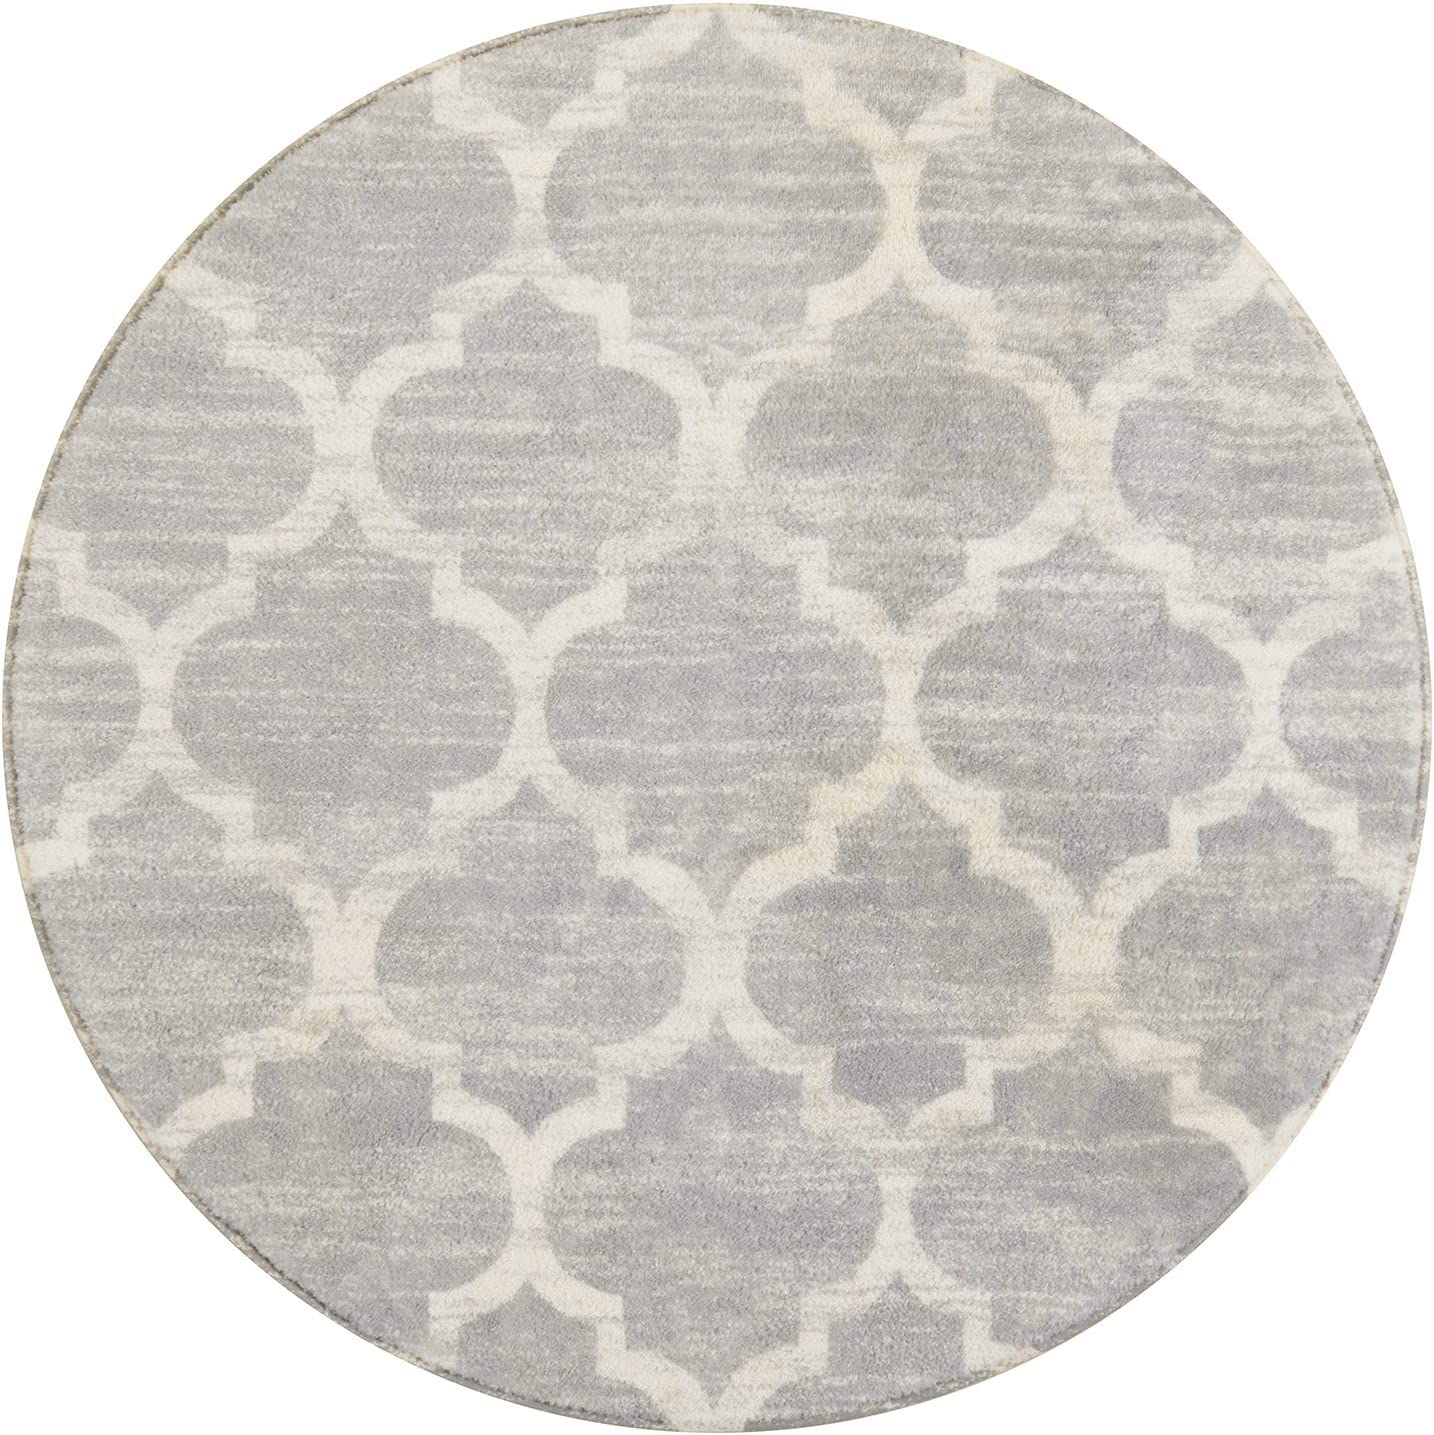 Lahome Moroccan Area Rug - 4' Diameter Faux Wool Non-Slip Area Rug Small Accent Distressed Throw Rugs Floor Carpet for Door Mat Entryway Bedrooms Laundry Room Decor (Round - 4' Diameter, Gray)